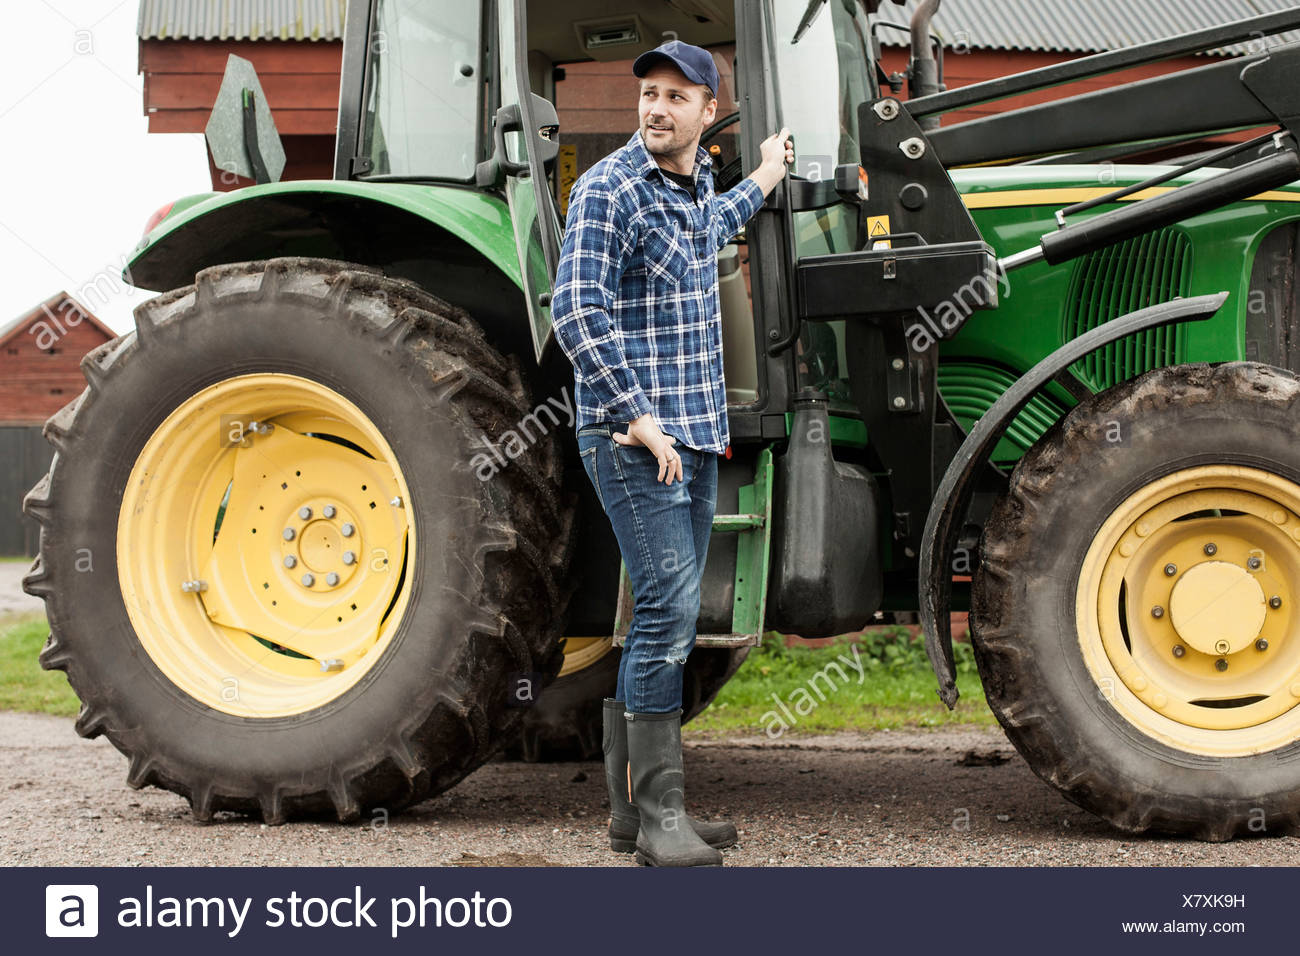 Full length of farmer standing by tractor on farm - Stock Image